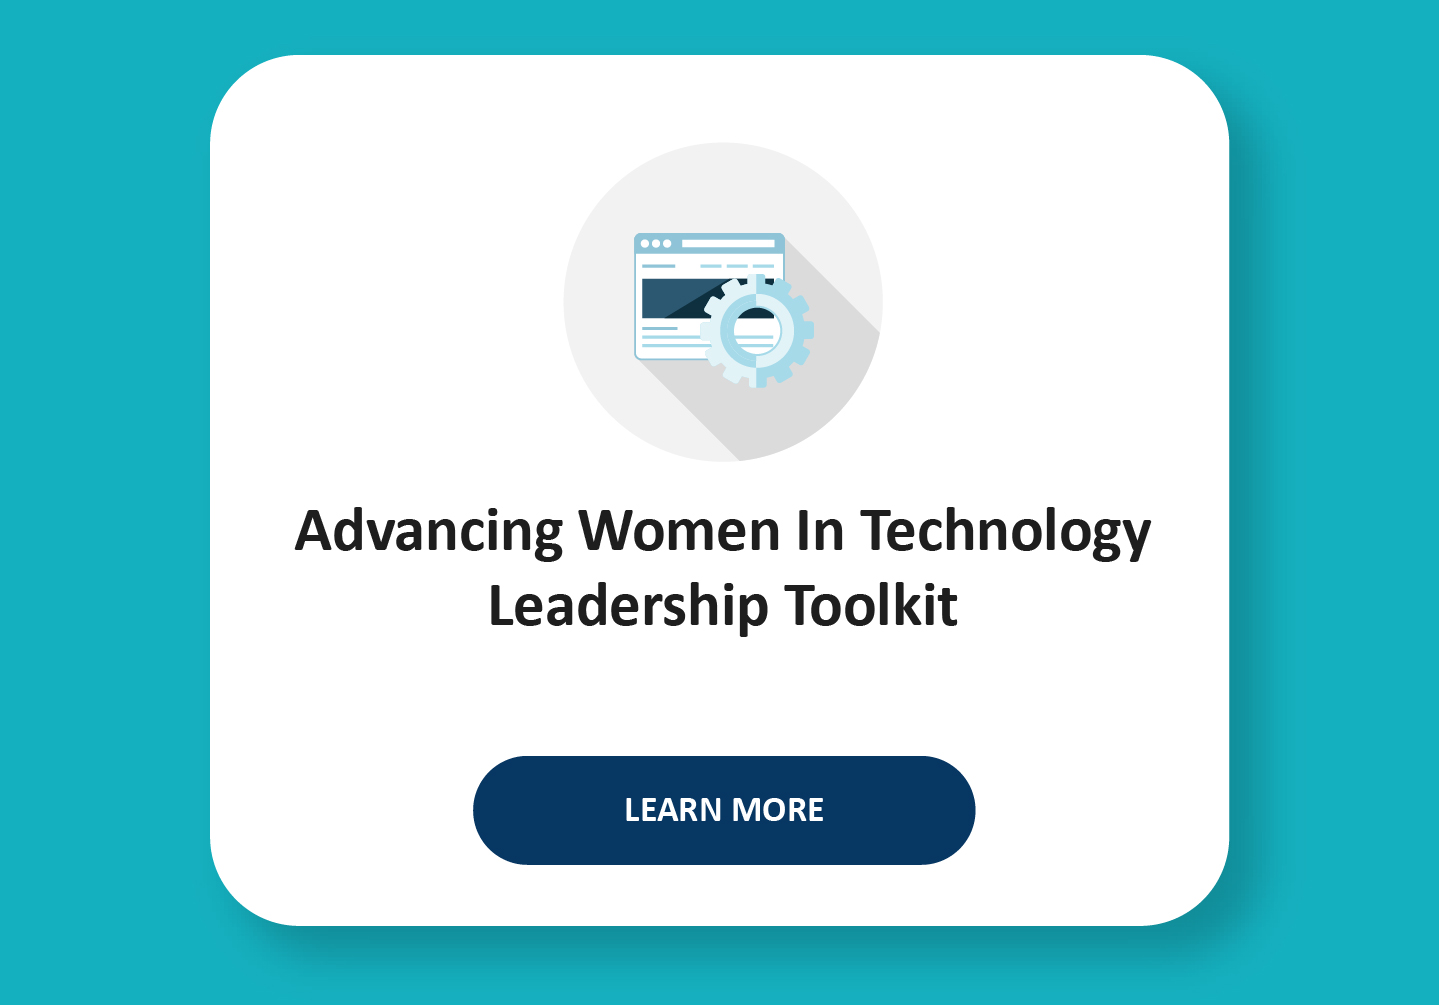 Advancing women in leadership toolkit